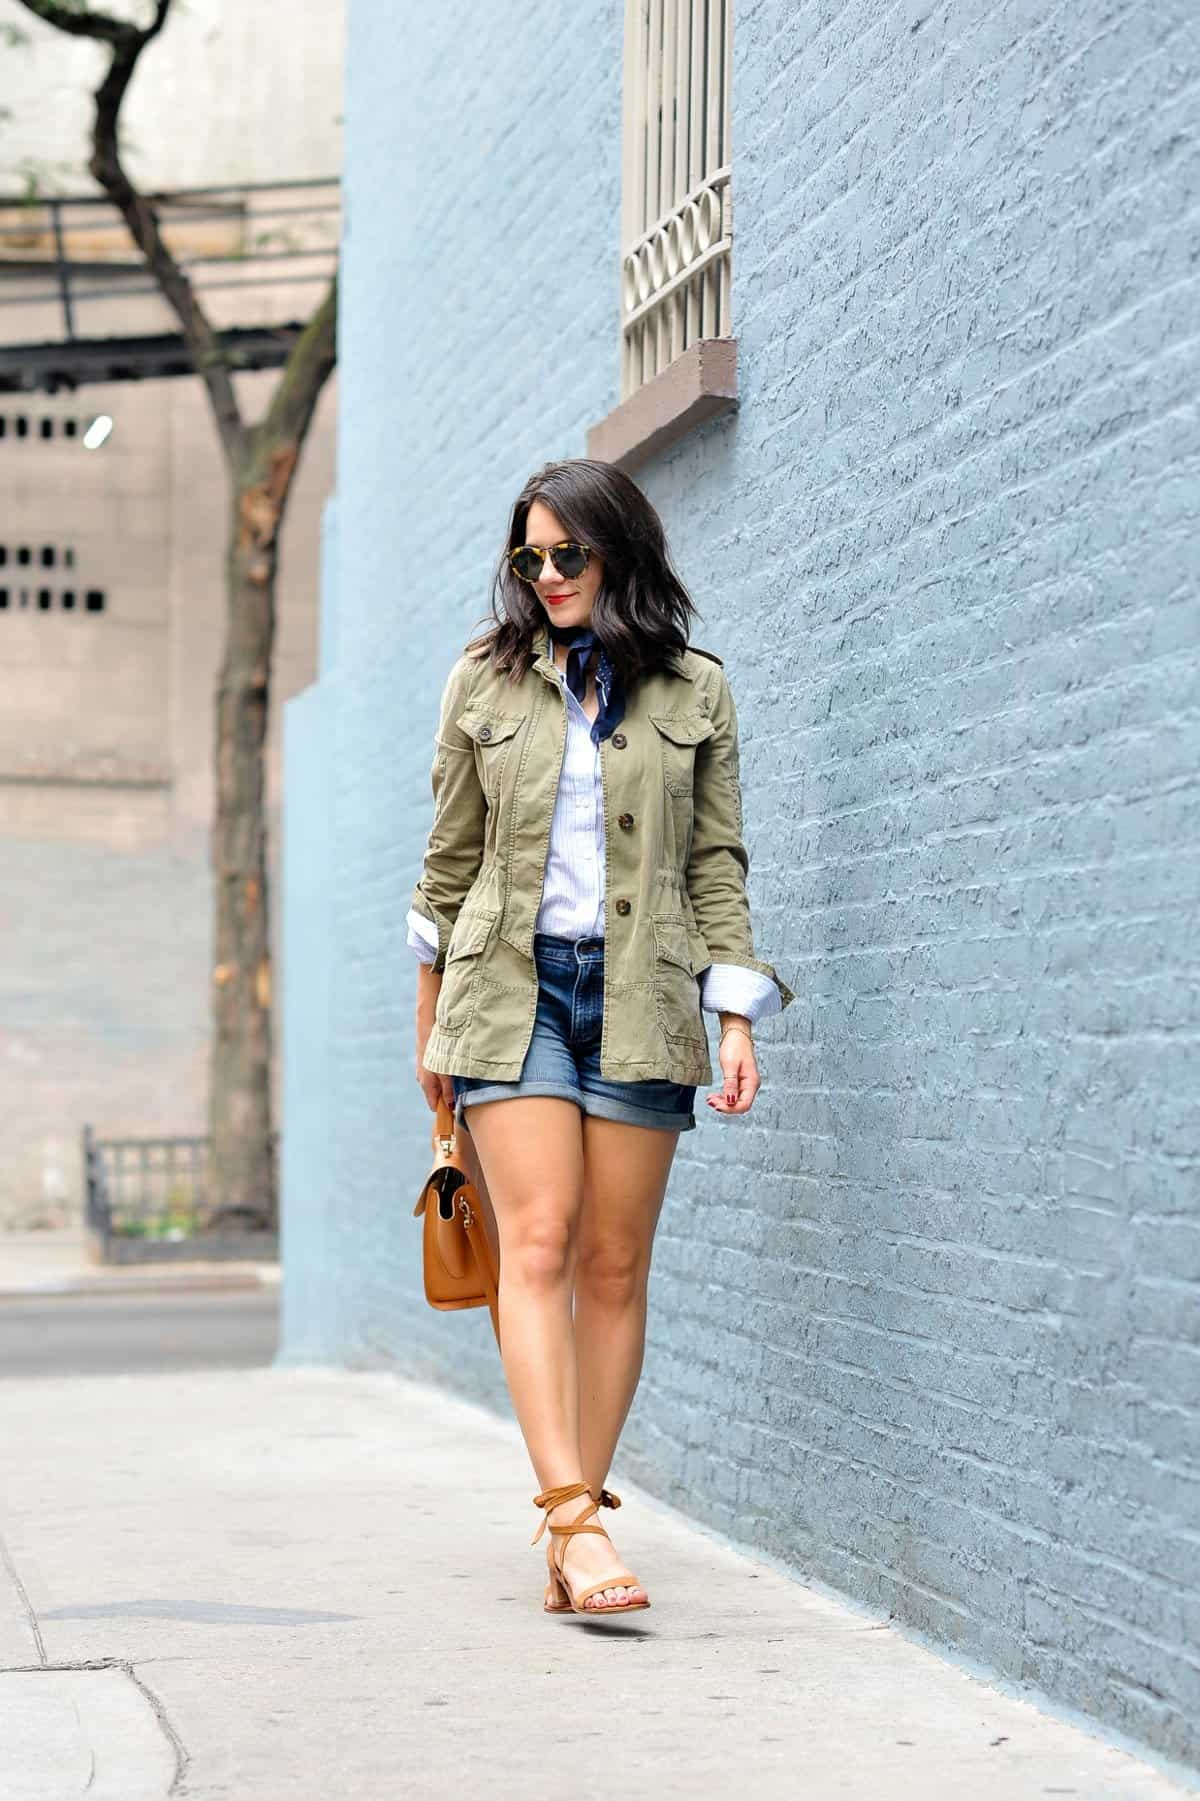 banana-republic-jacket-new-york-city-outfits-mystylevita-my-style-vita-15